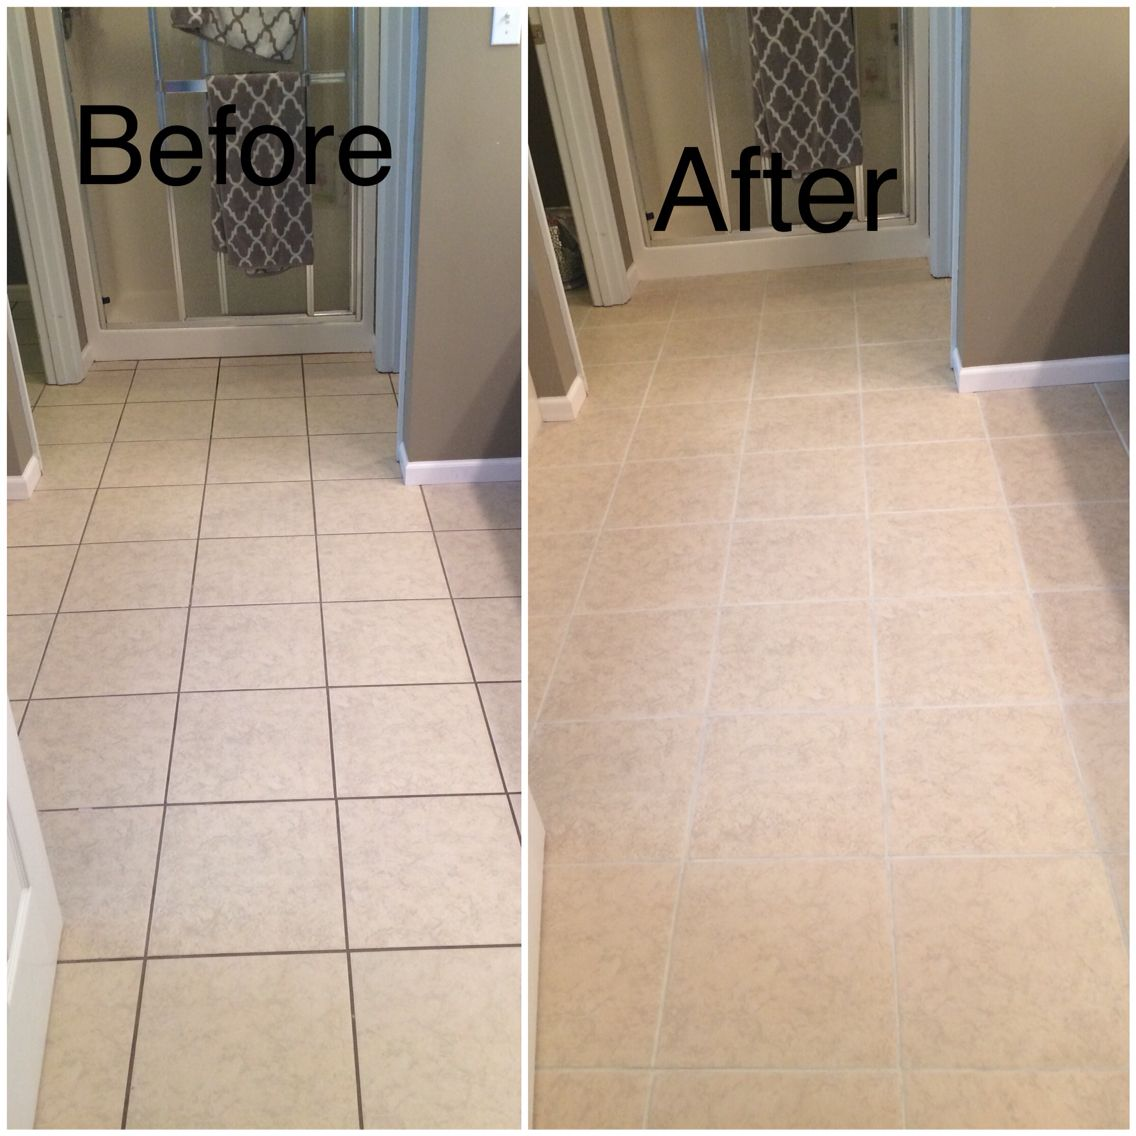 Pin By Niki Foster On House Tile Floor Diy Grout Renew